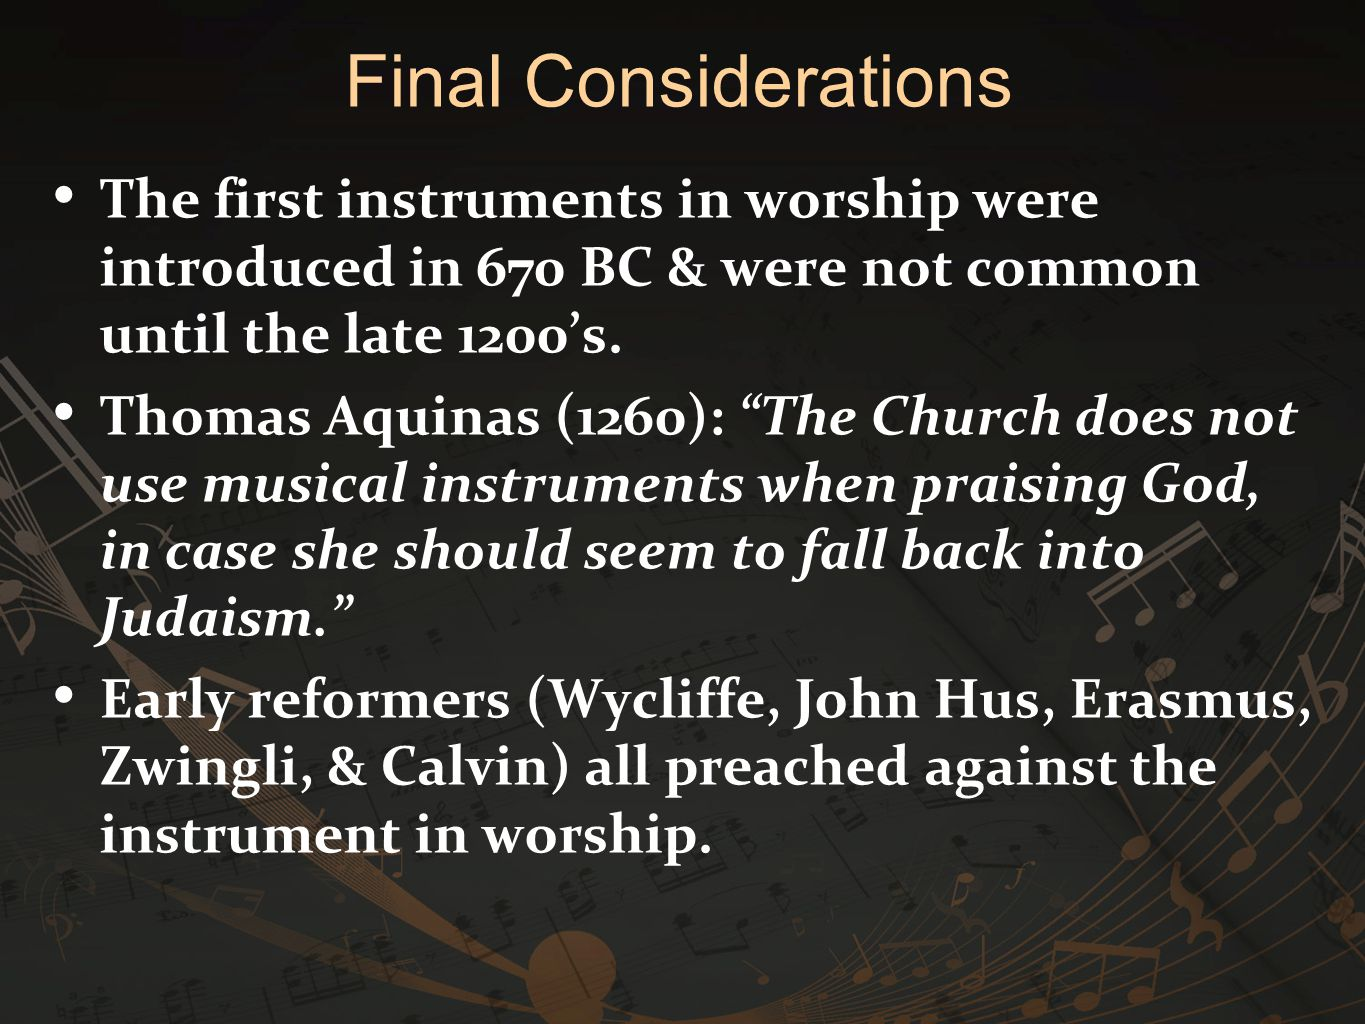 """The first instruments in worship were introduced in 670 BC & were not common until the late 1200's. Thomas Aquinas (1260): """"The Church does not use mu"""